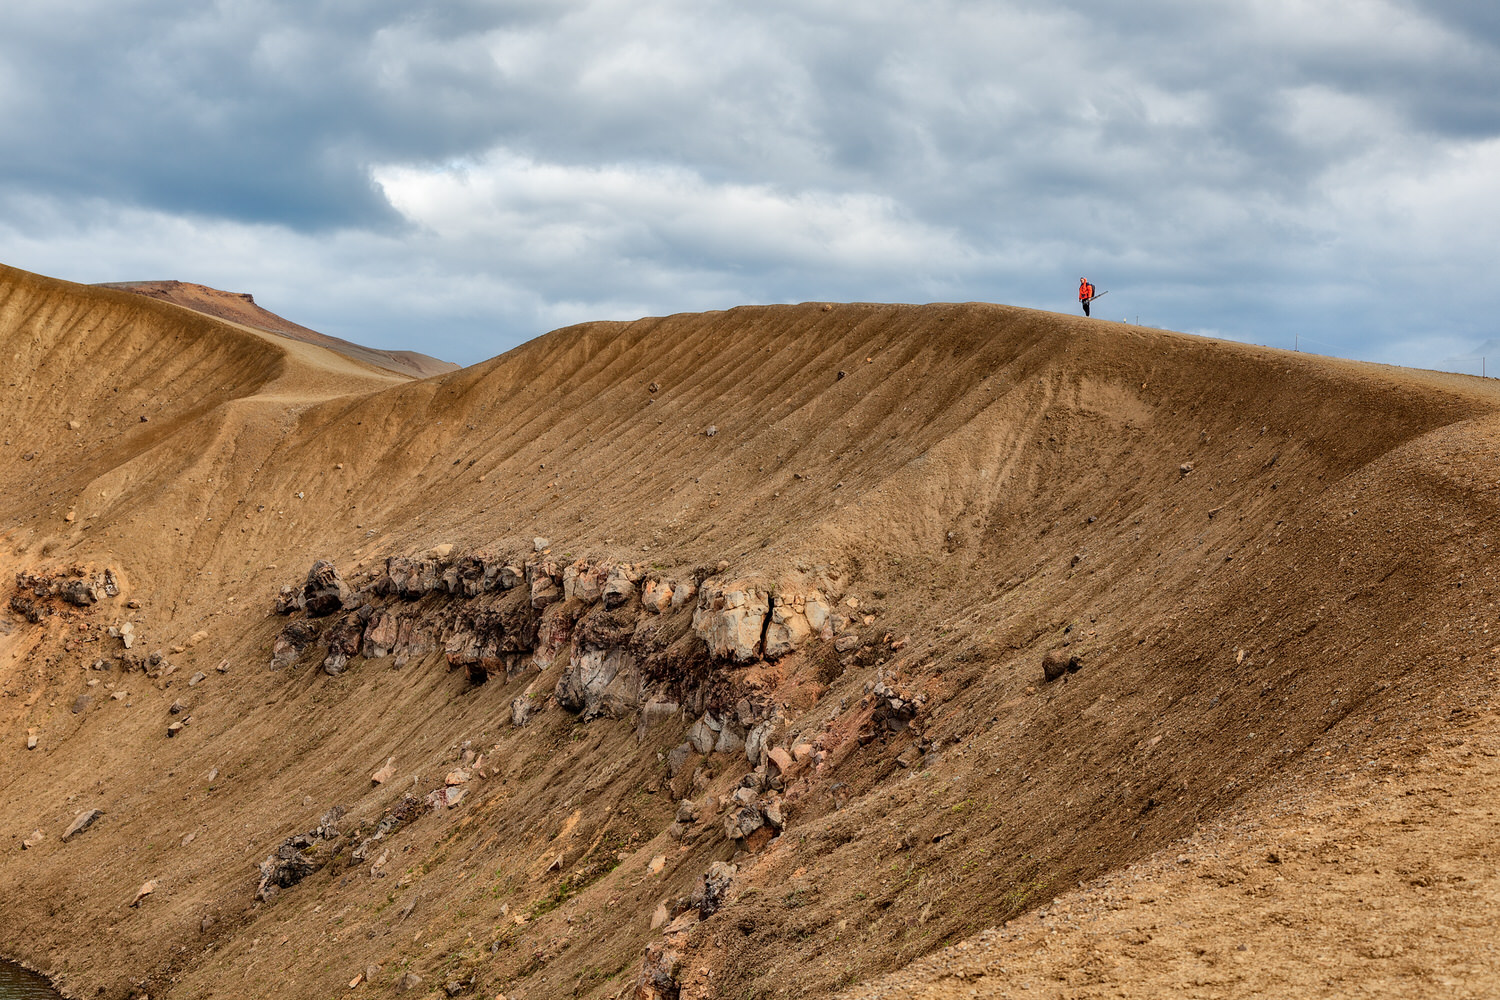 Photographer hiking around the edge of the    Stora-Viti crater    near the town of Myvatn in    Iceland   .